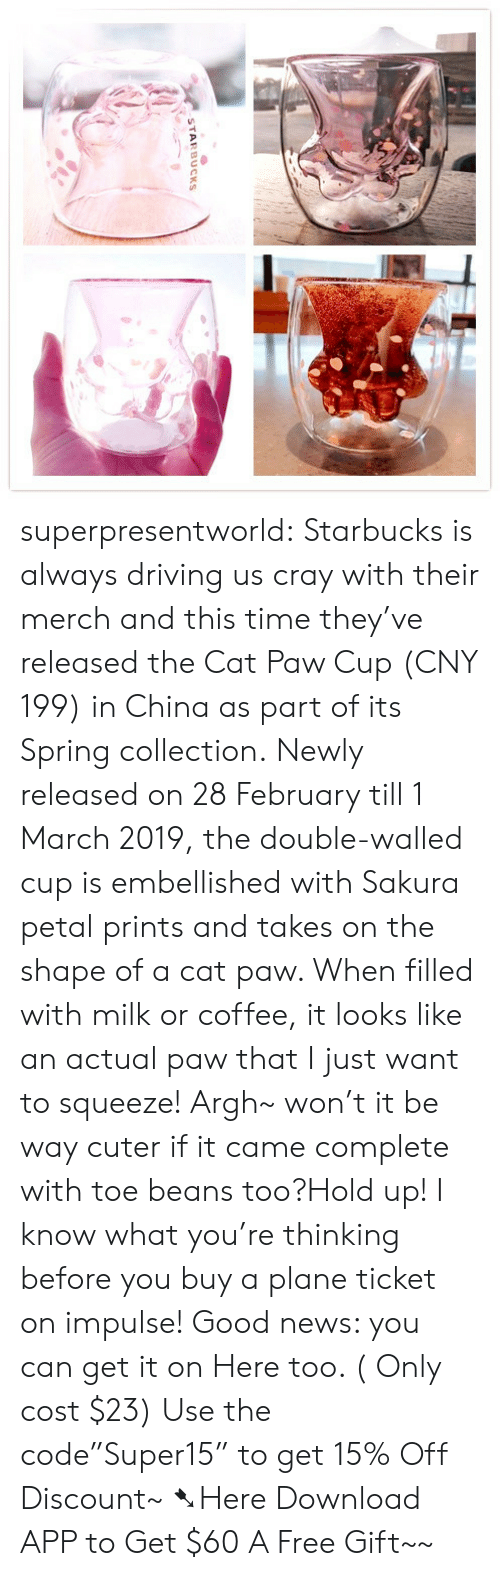 """Driving, News, and Starbucks: STARBUCKS superpresentworld: Starbucks is always driving us cray with their merch and this time they've released the Cat Paw Cup (CNY 199) in China as part of its Spring collection. Newly released on 28 February till 1 March 2019, the double-walled cup is embellished with Sakura petal prints and takes on the shape of a cat paw. When filled with milk or coffee, it looks like an actual paw that I just want to squeeze! Argh~ won't it be way cuter if it came complete with toe beans too?Hold up! I know what you're thinking before you buy a plane ticket on impulse! Good news: you can get it on Here too. ( Only cost $23) Use the code""""Super15"""" to get 15% Off Discount~ ➷Here Download APP to Get $60  A Free Gift~~"""